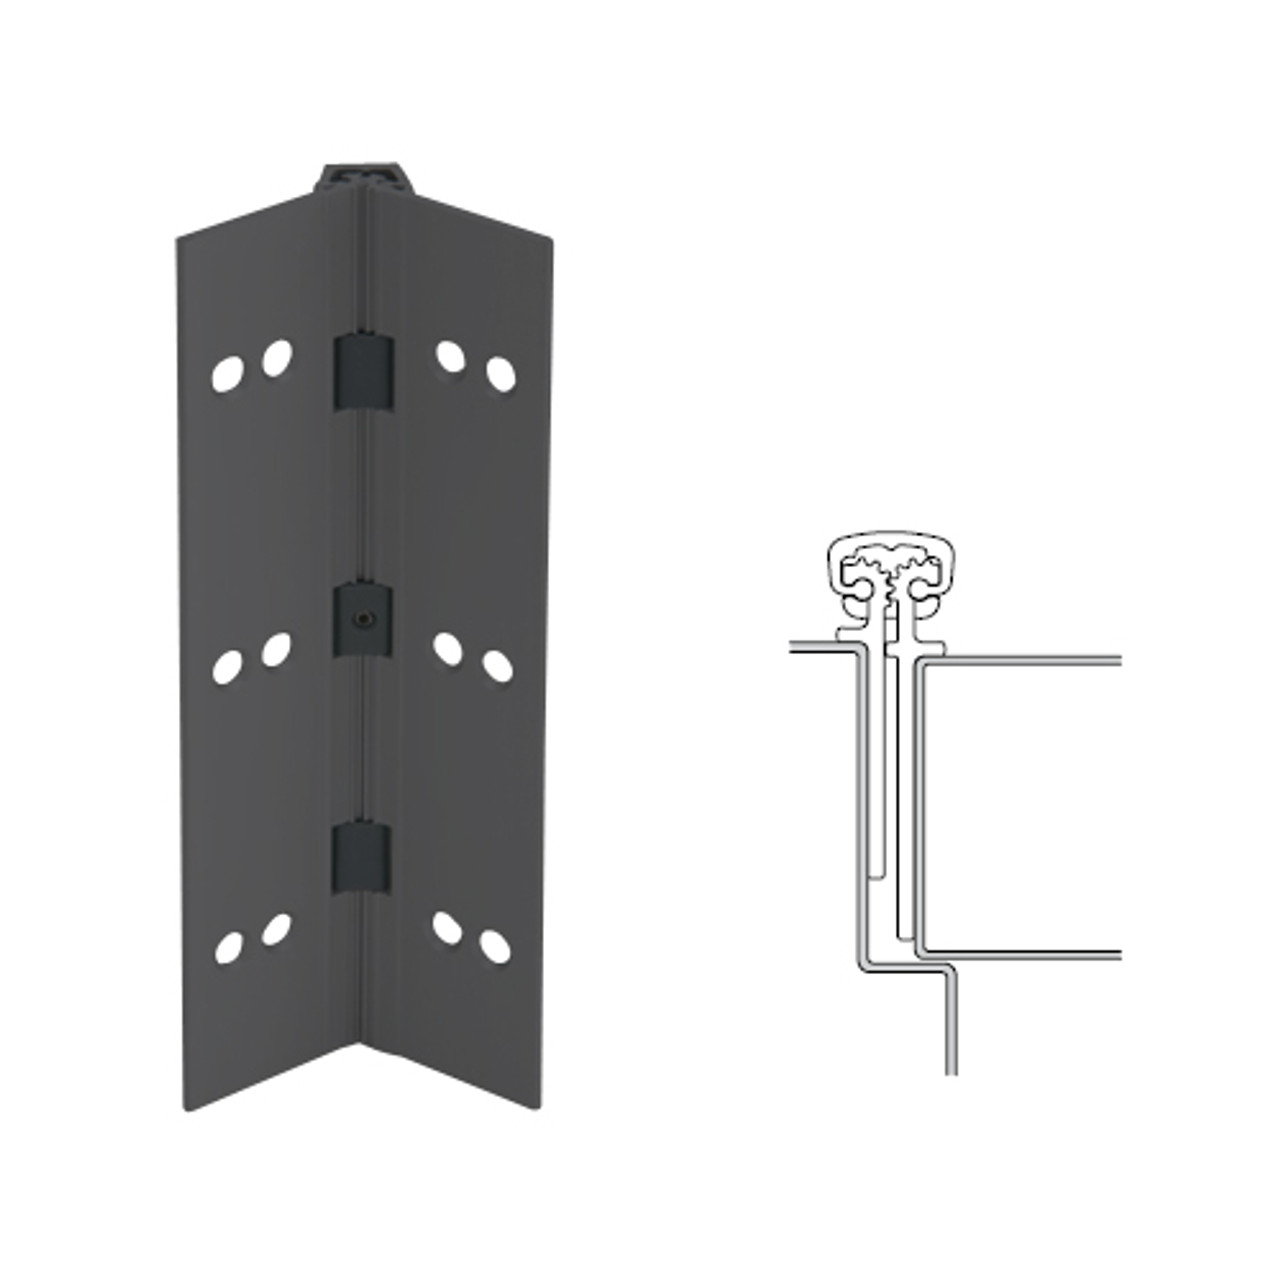 026XY-315AN-120-WD IVES Full Mortise Continuous Geared Hinges with Wood Screws in Anodized Black